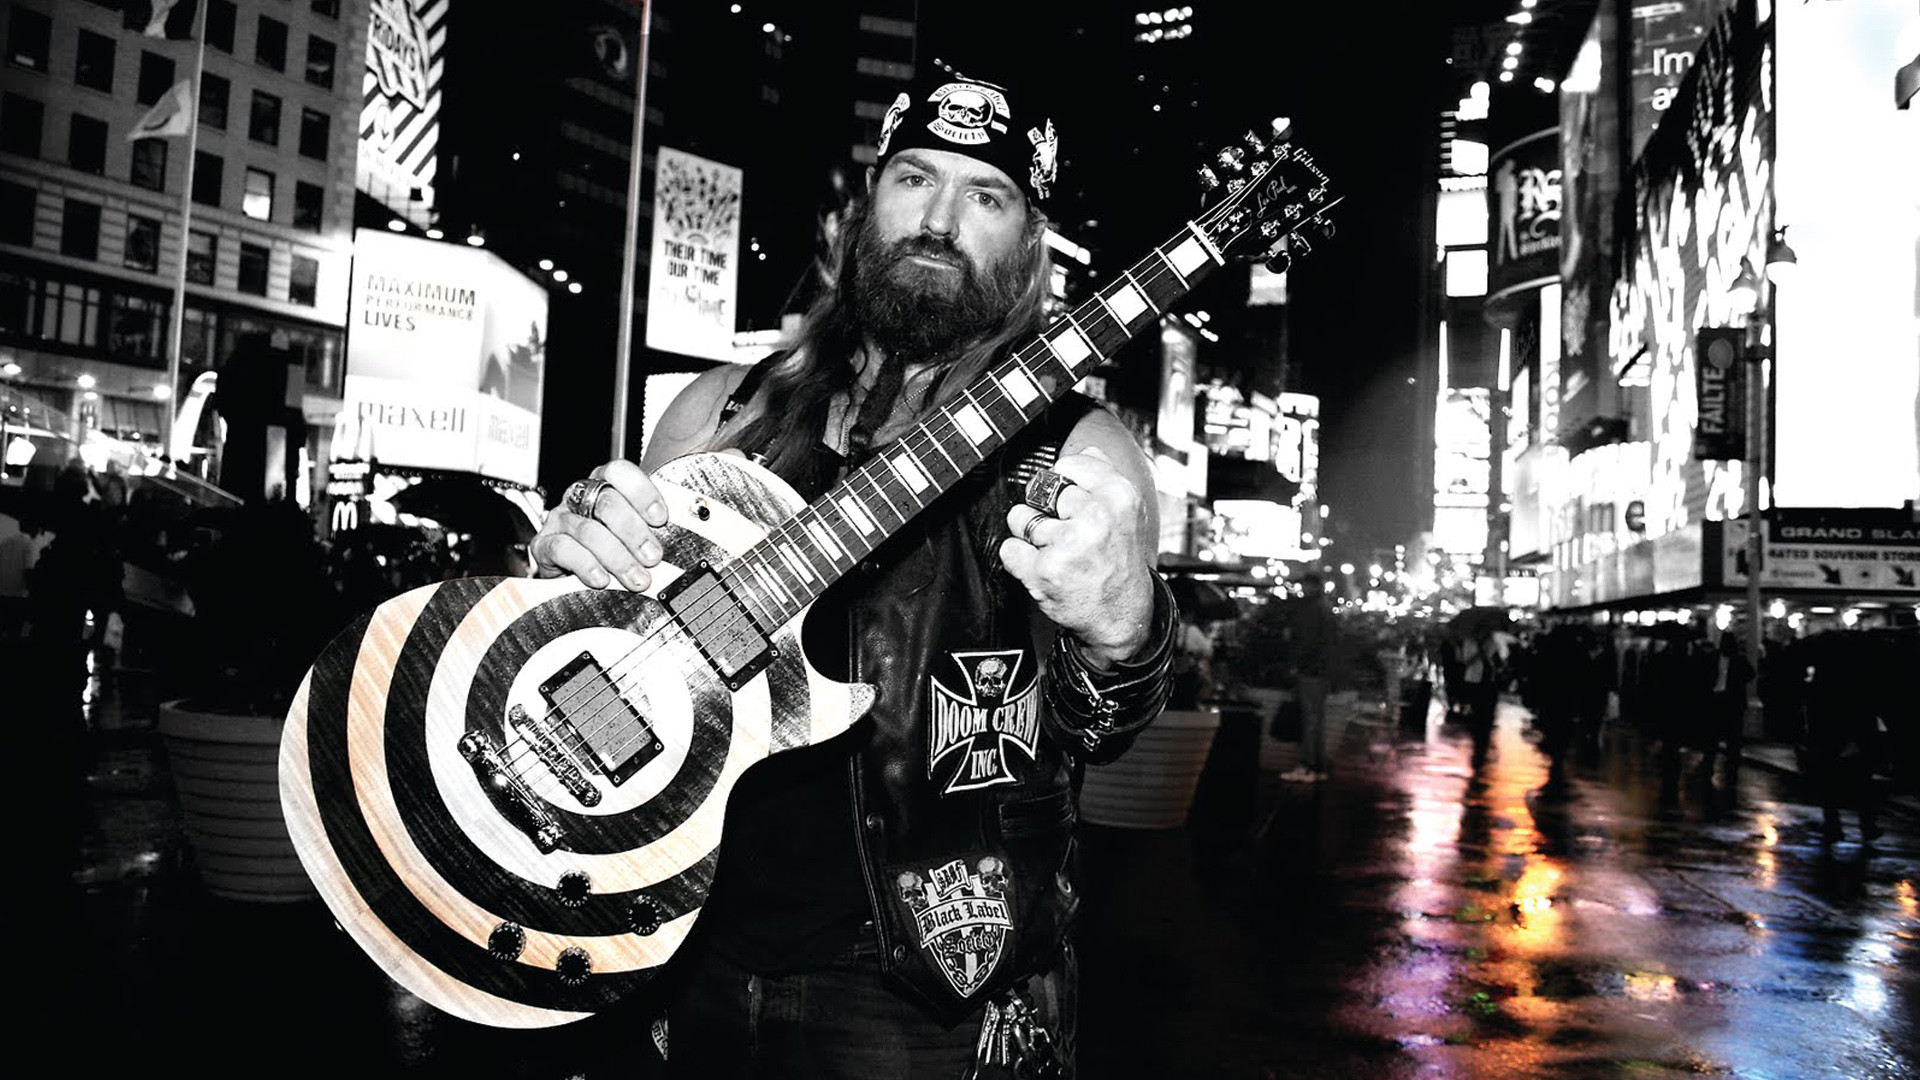 1920x1080 Music - Black Label Society Guitar Guitarist Heavy Metal Zakk Wylde  Wallpaper